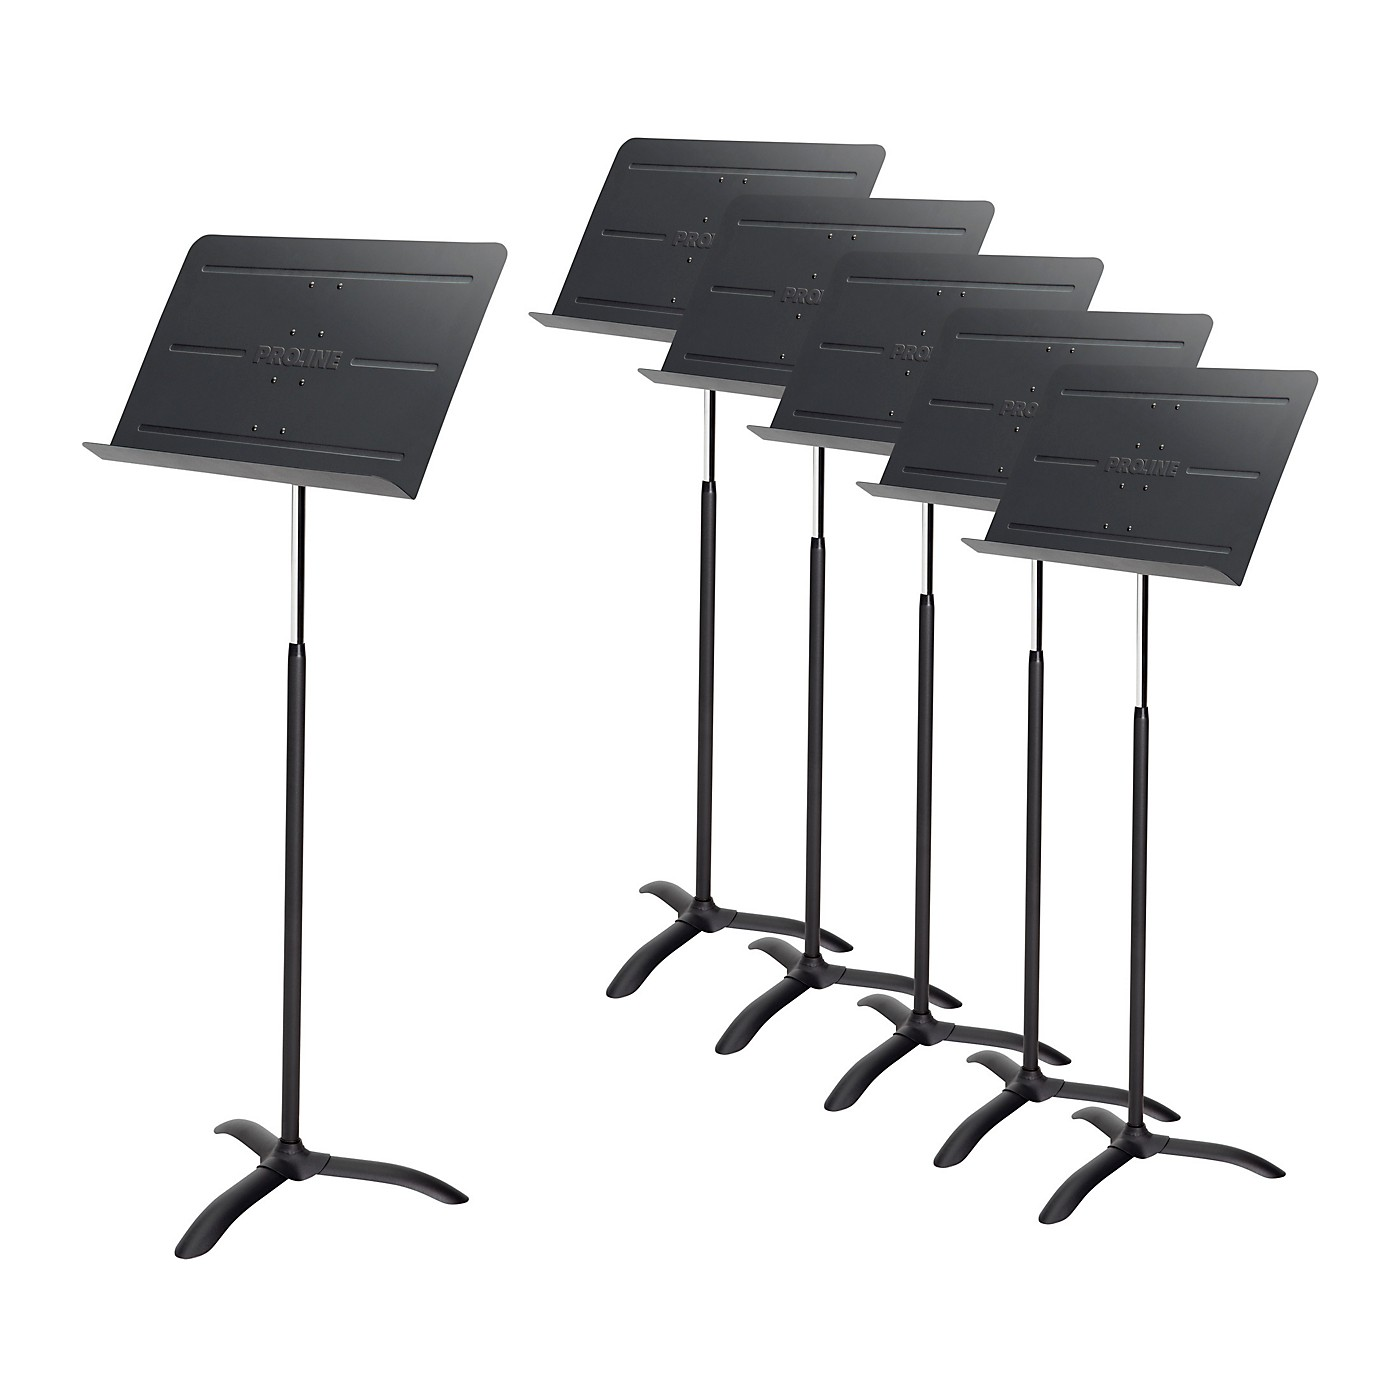 Proline Professional Orchestral Music Stand Black - 6-Pack thumbnail